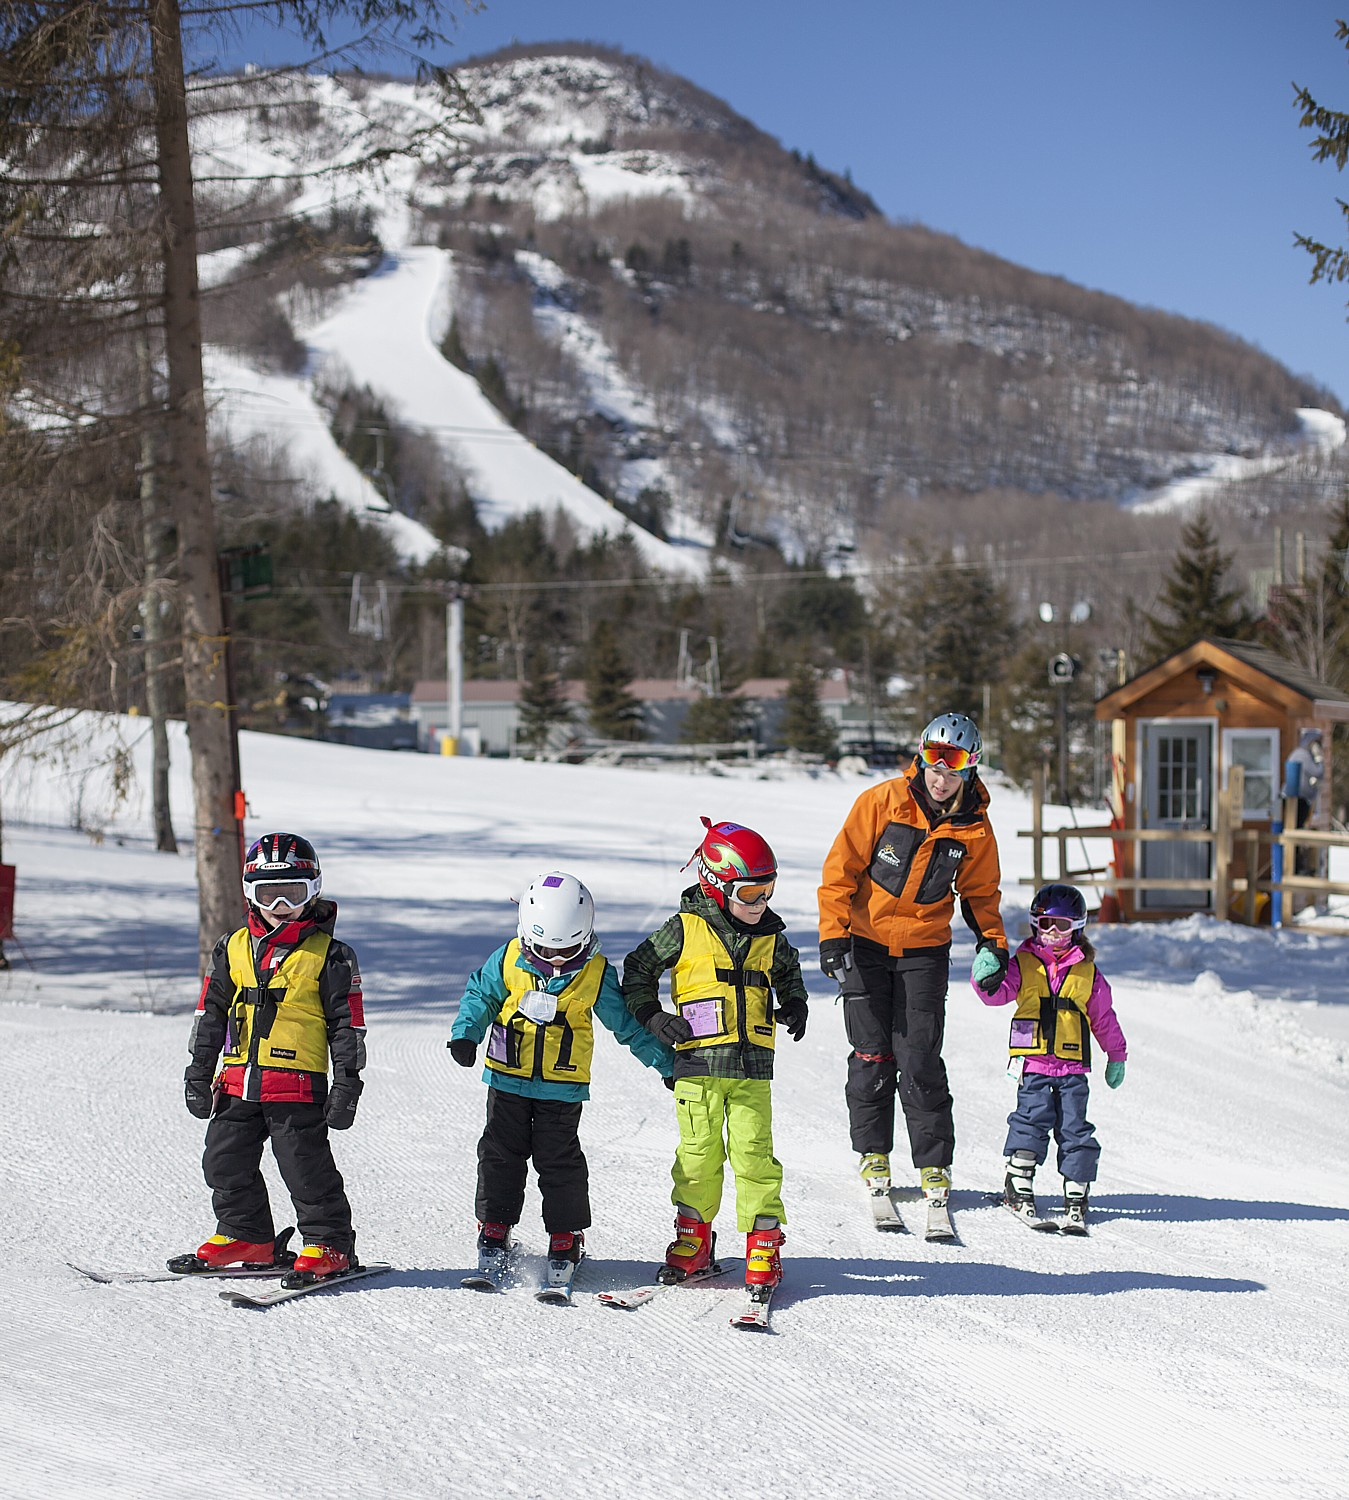 New York State's Ski Areas Span Gamut from Destination Resorts to Cozy Family-Friendly Day Trips